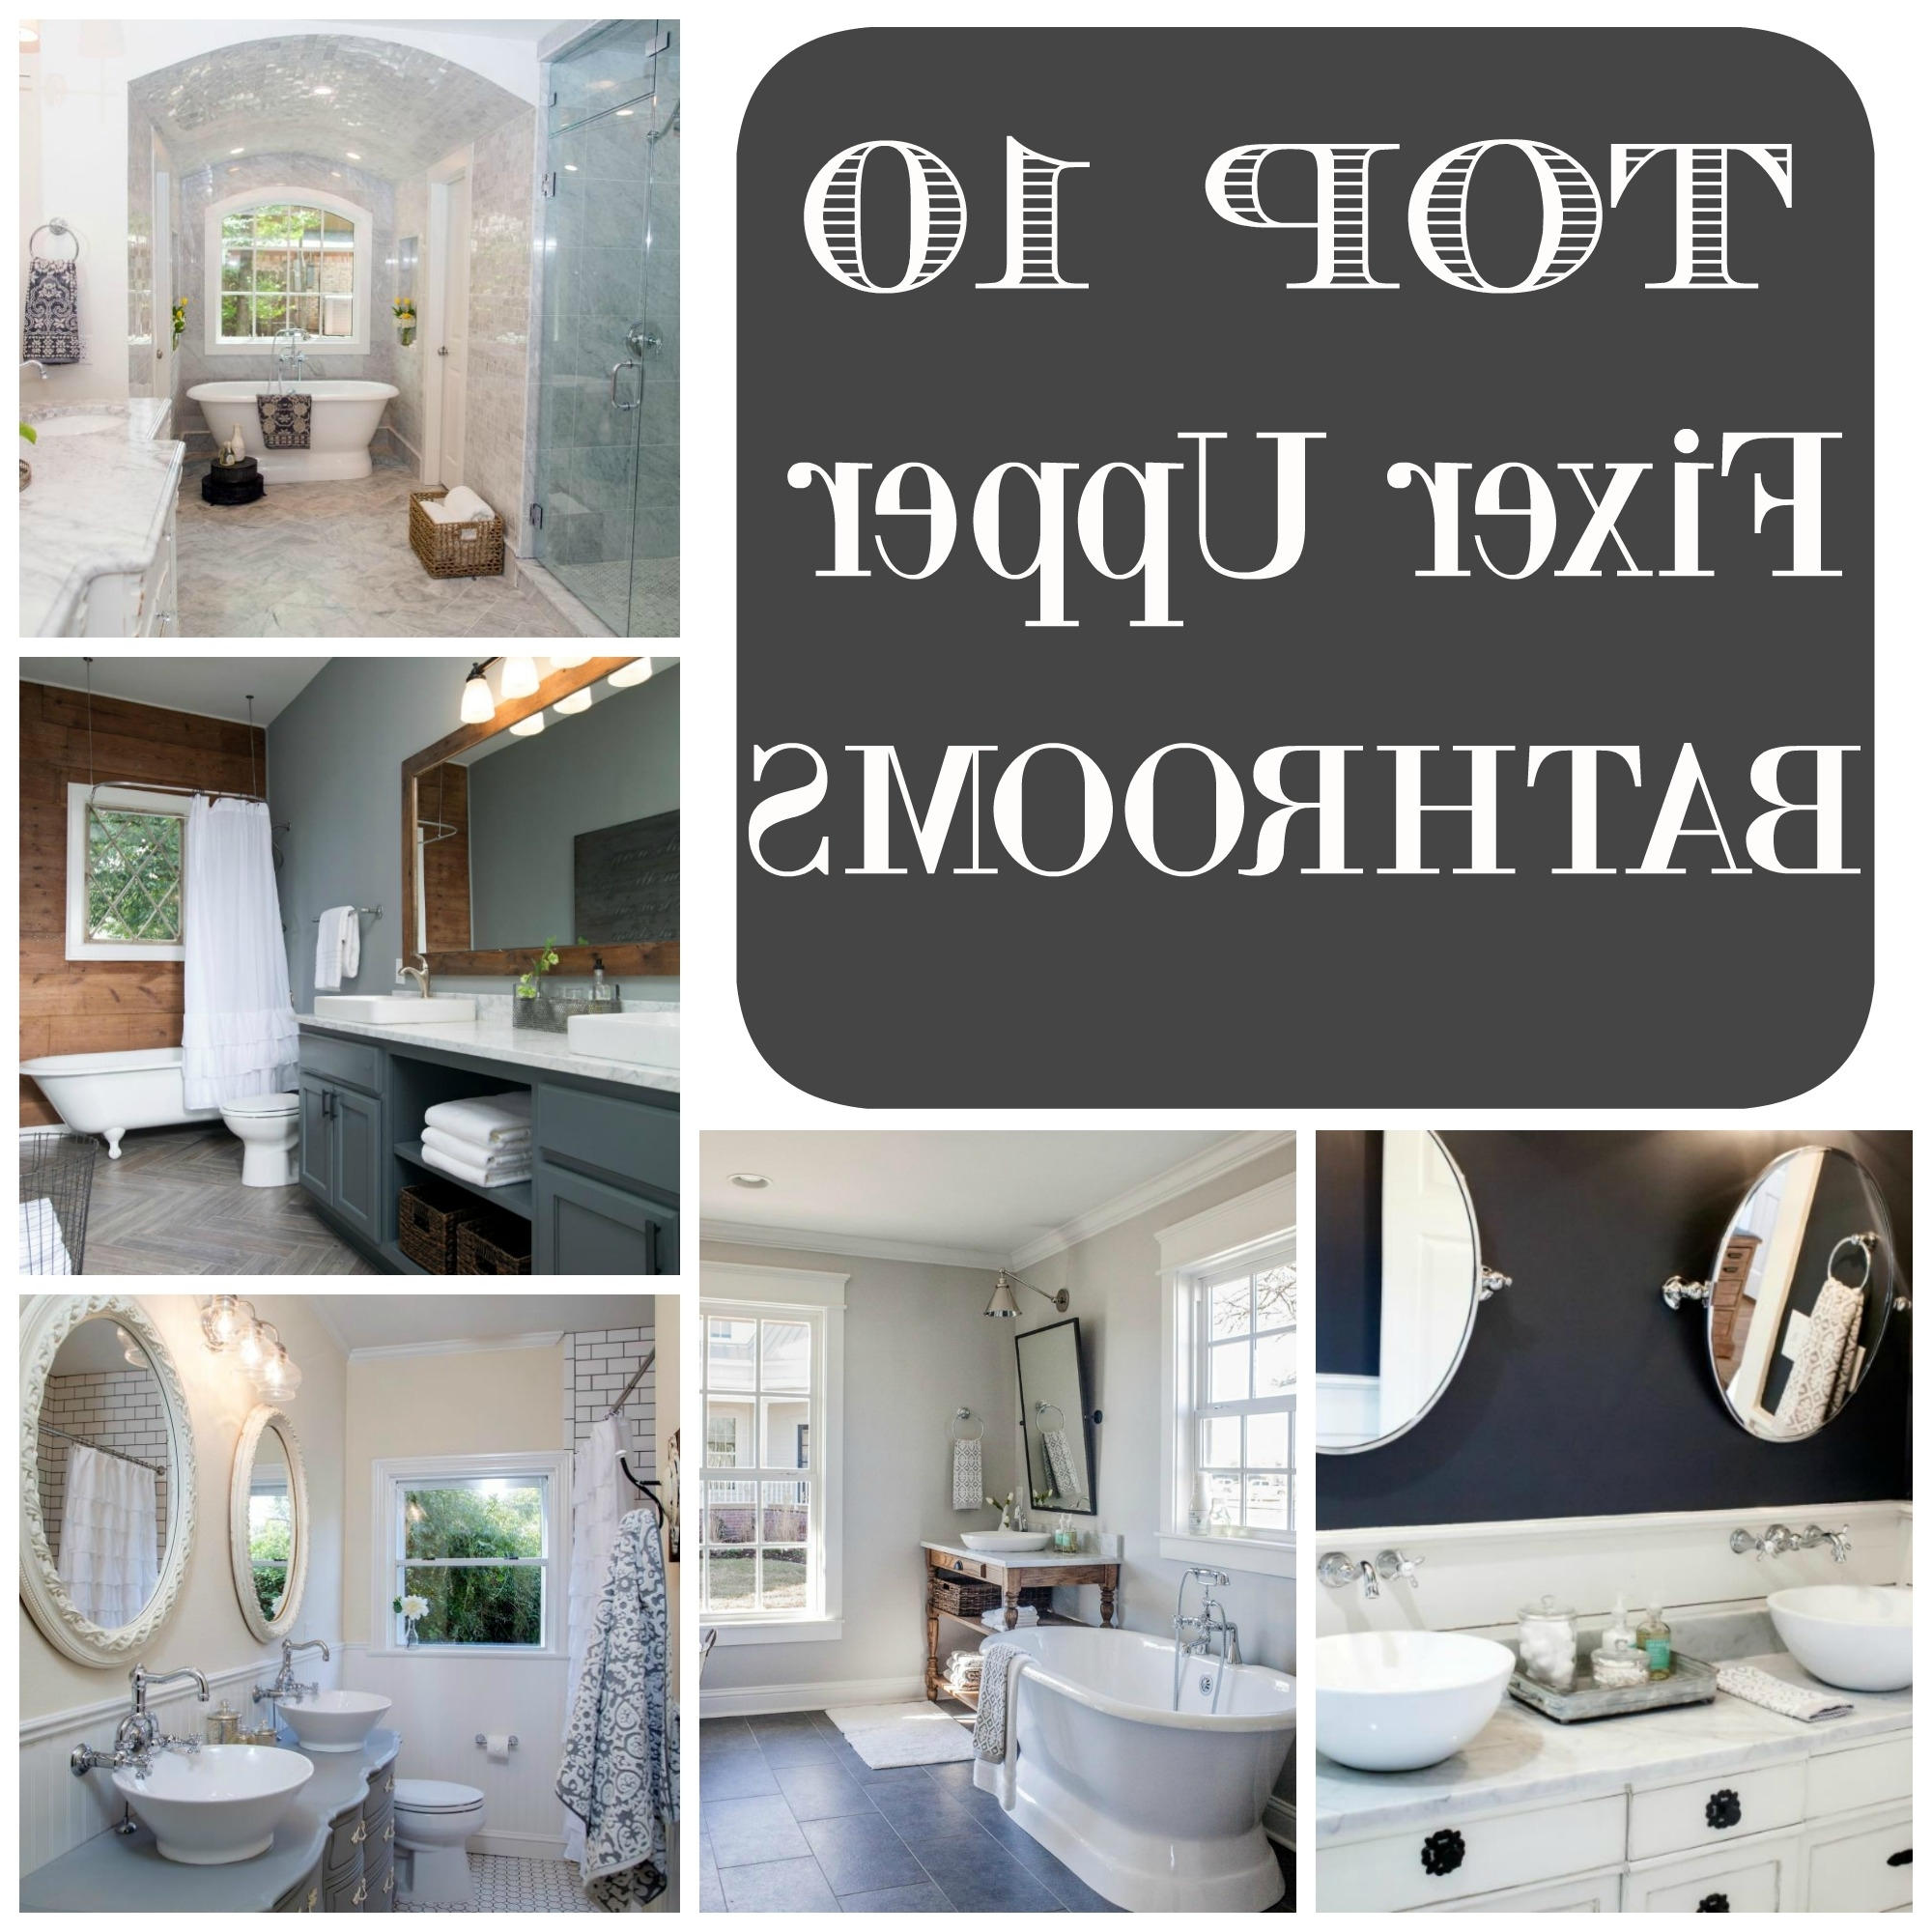 Top 10 Fixer Upper Bathrooms Daily Dose Of Style 30+ Fixer Upper Bathroom Design Inspirations